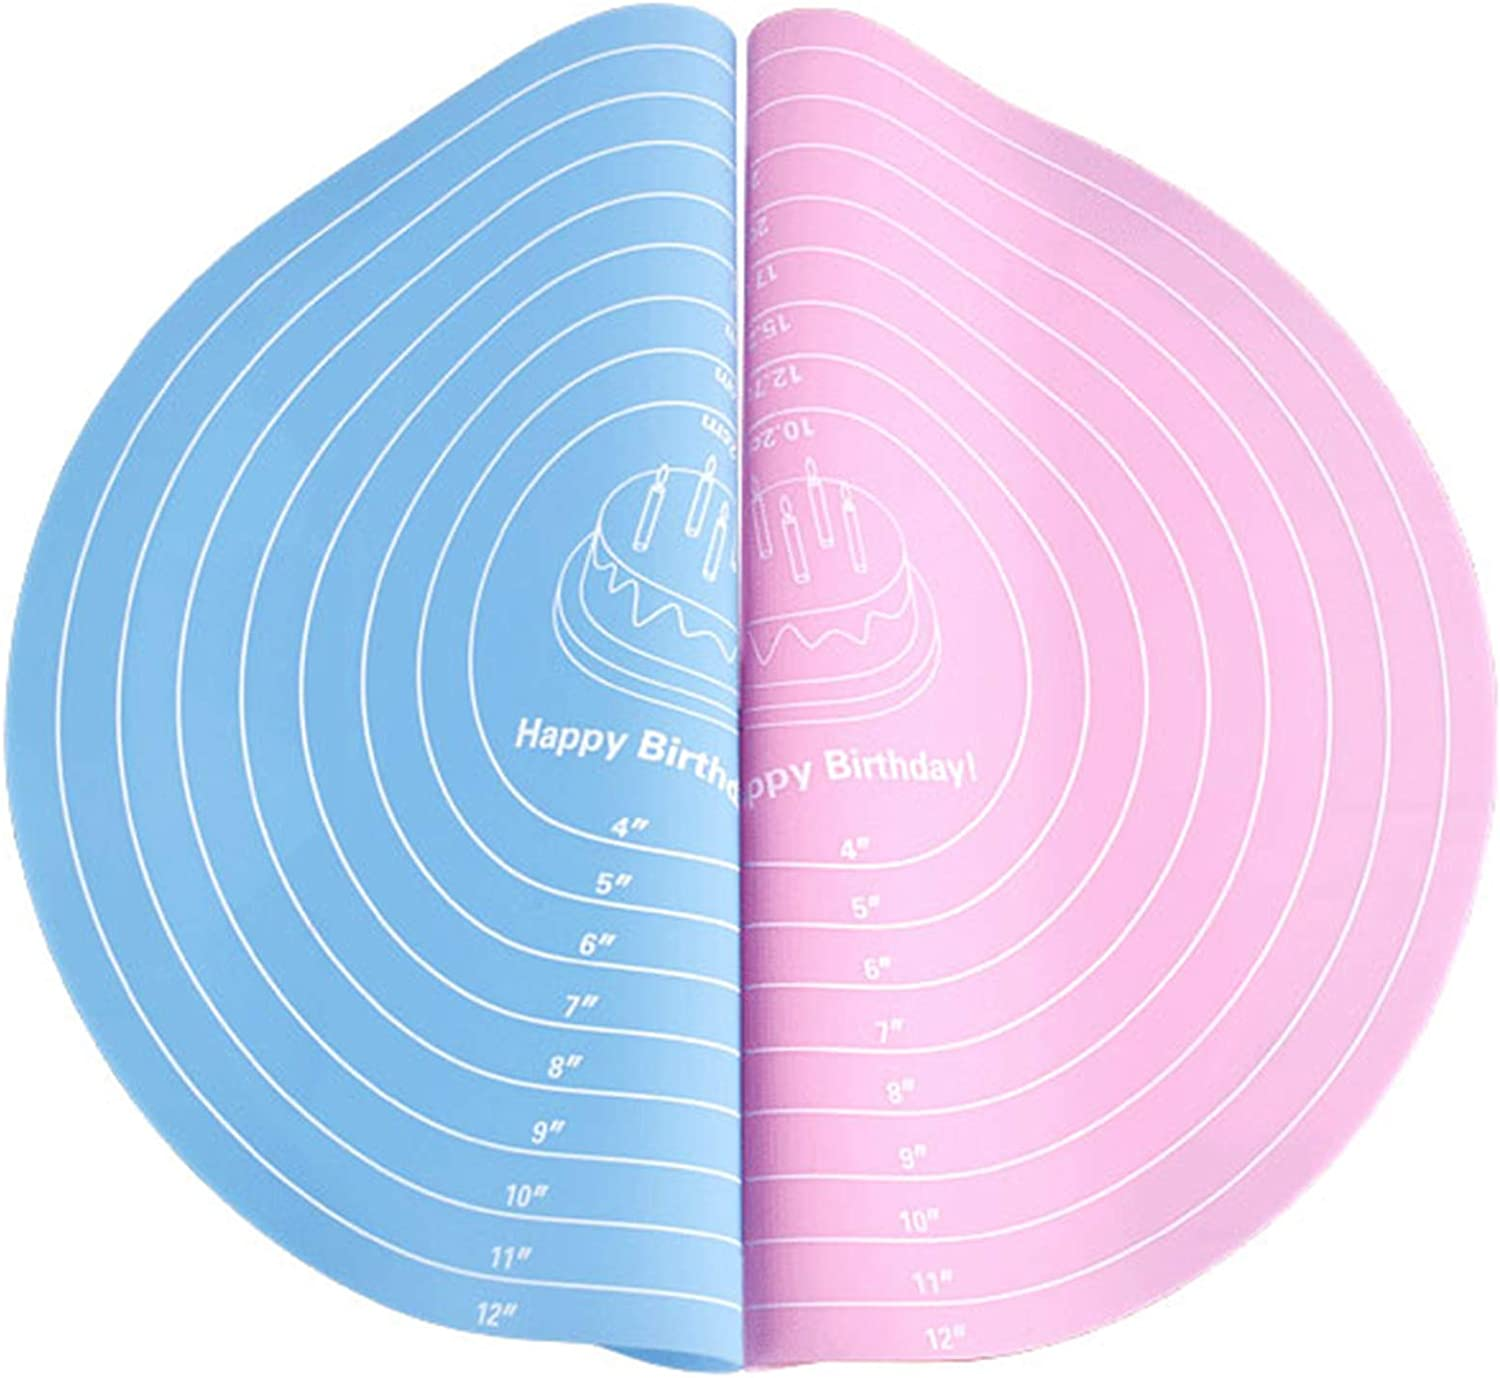 EORTA 2 Courier shipping free shipping Pcs Round Baking Mats Food Measurements 12 Gra Inch Online limited product with